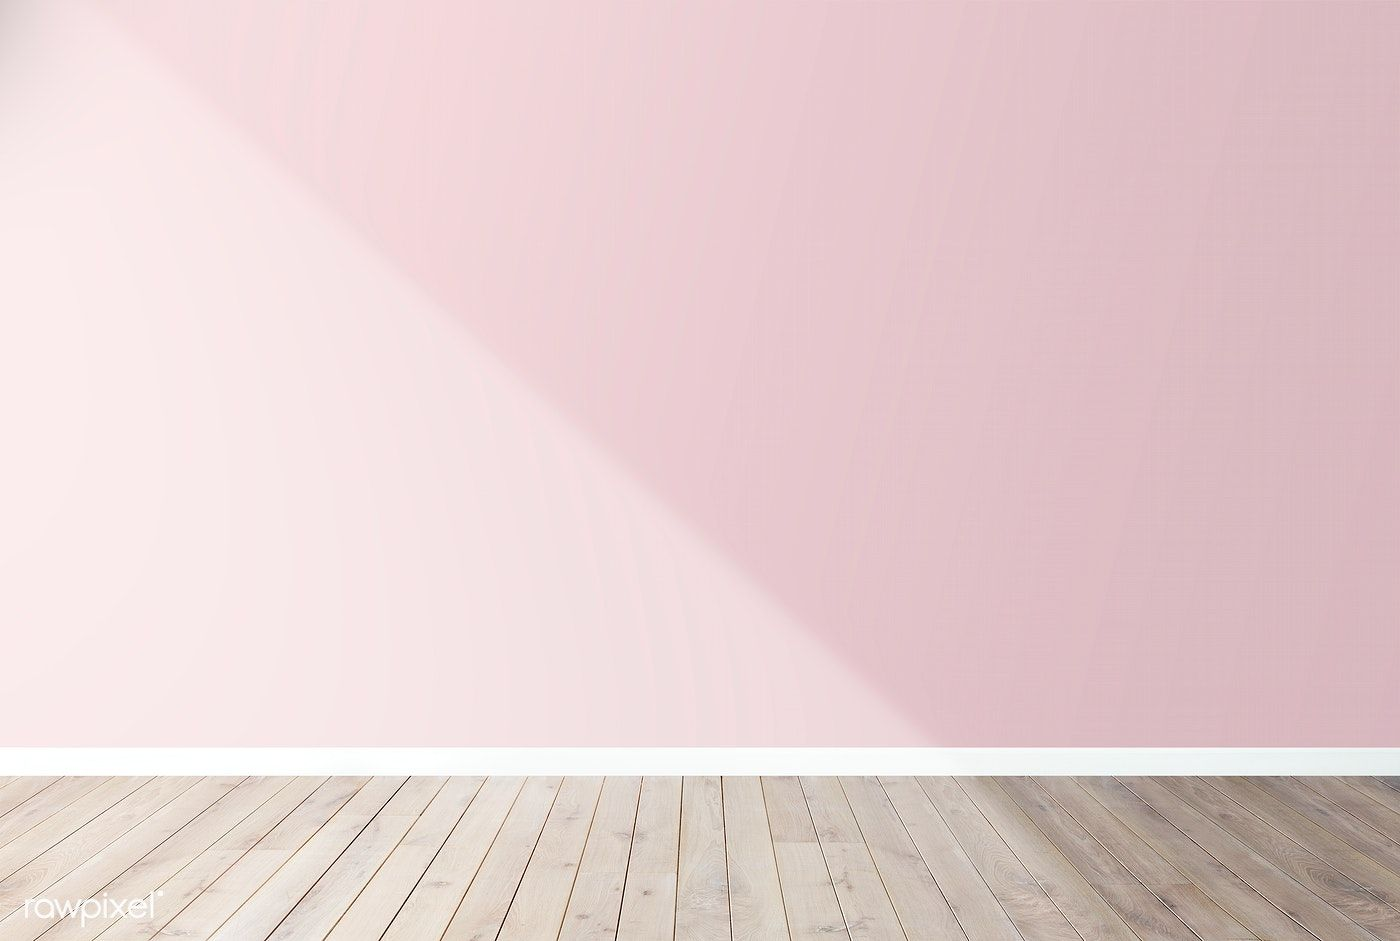 Download Premium Psd Of Pink Blank Concrete Wall Mockup 585998 Concrete Wall Black Brick Wall Brick Wall Background